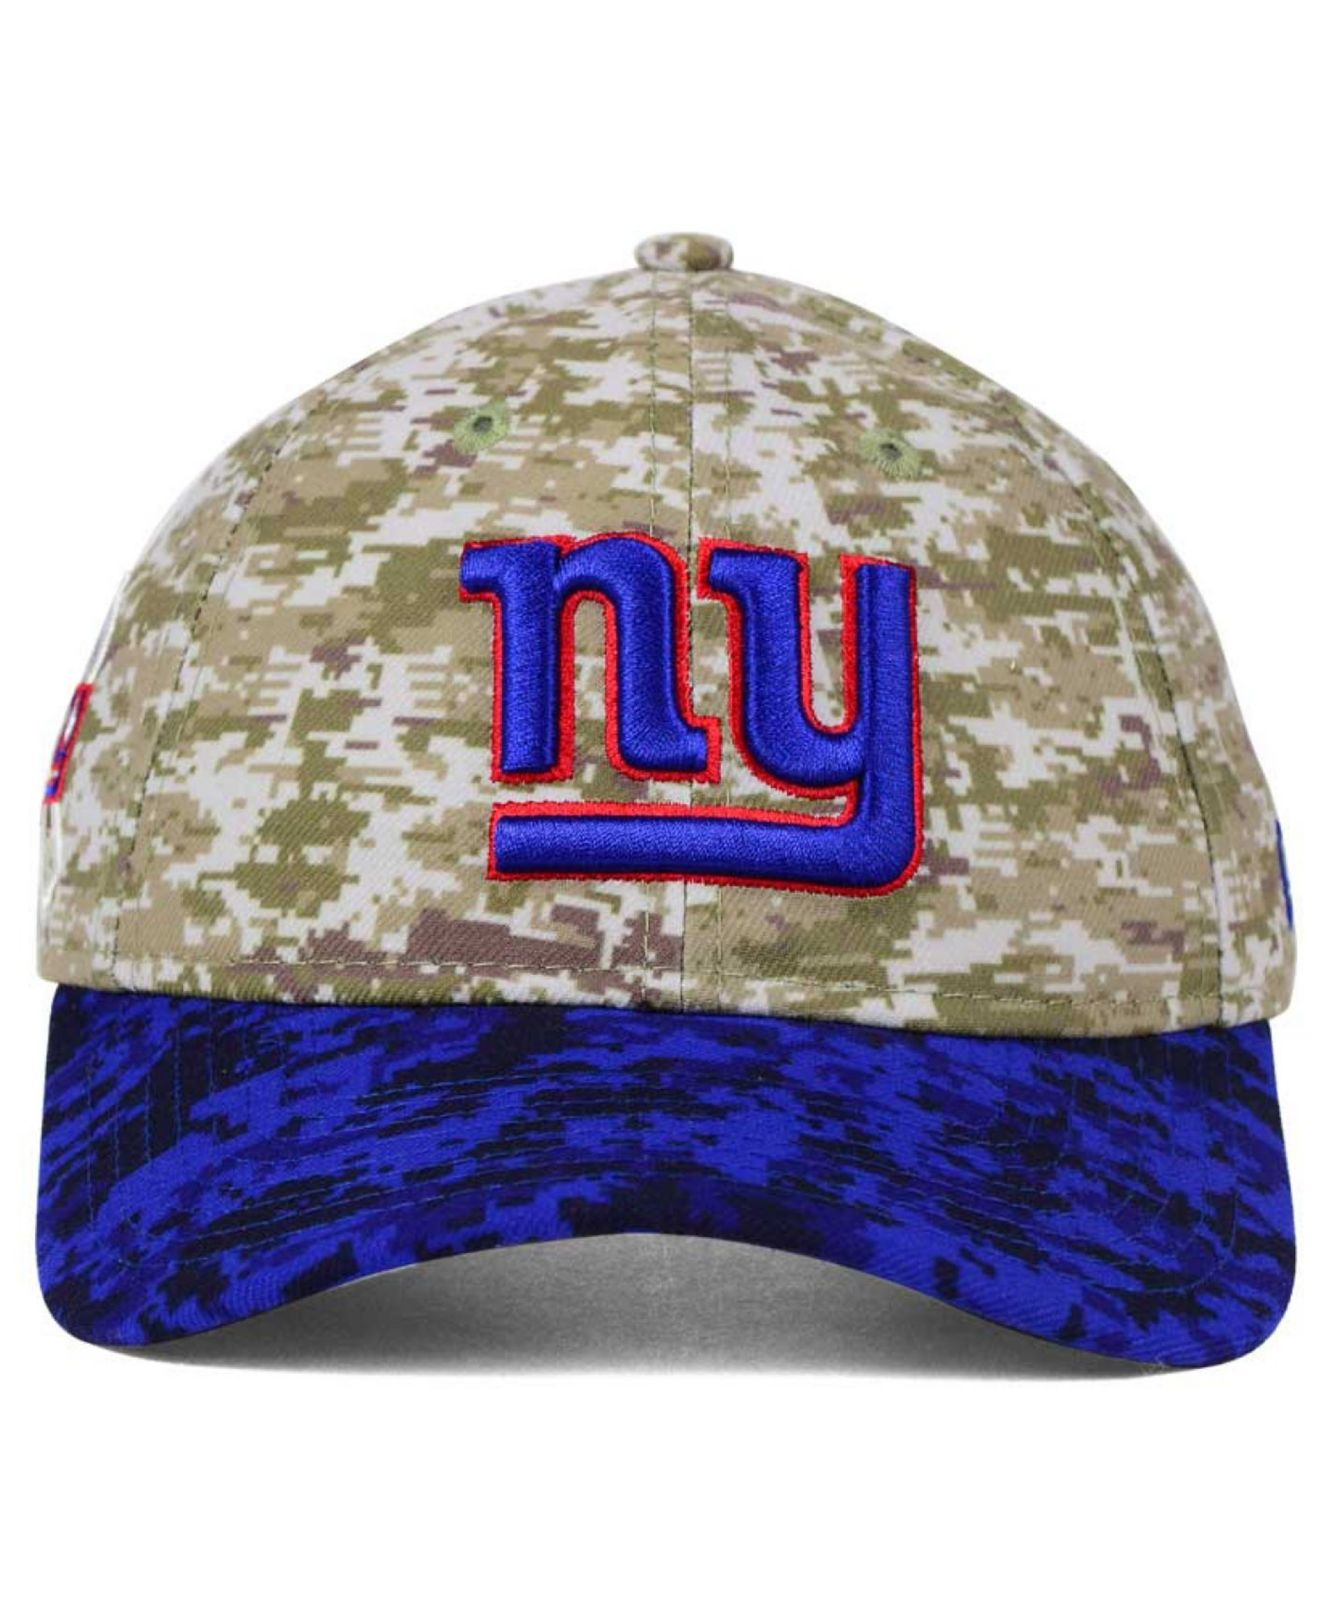 a2384a34726 ... new style snapback hat lyst ktz womens new york giants salute to service  9twenty cap in